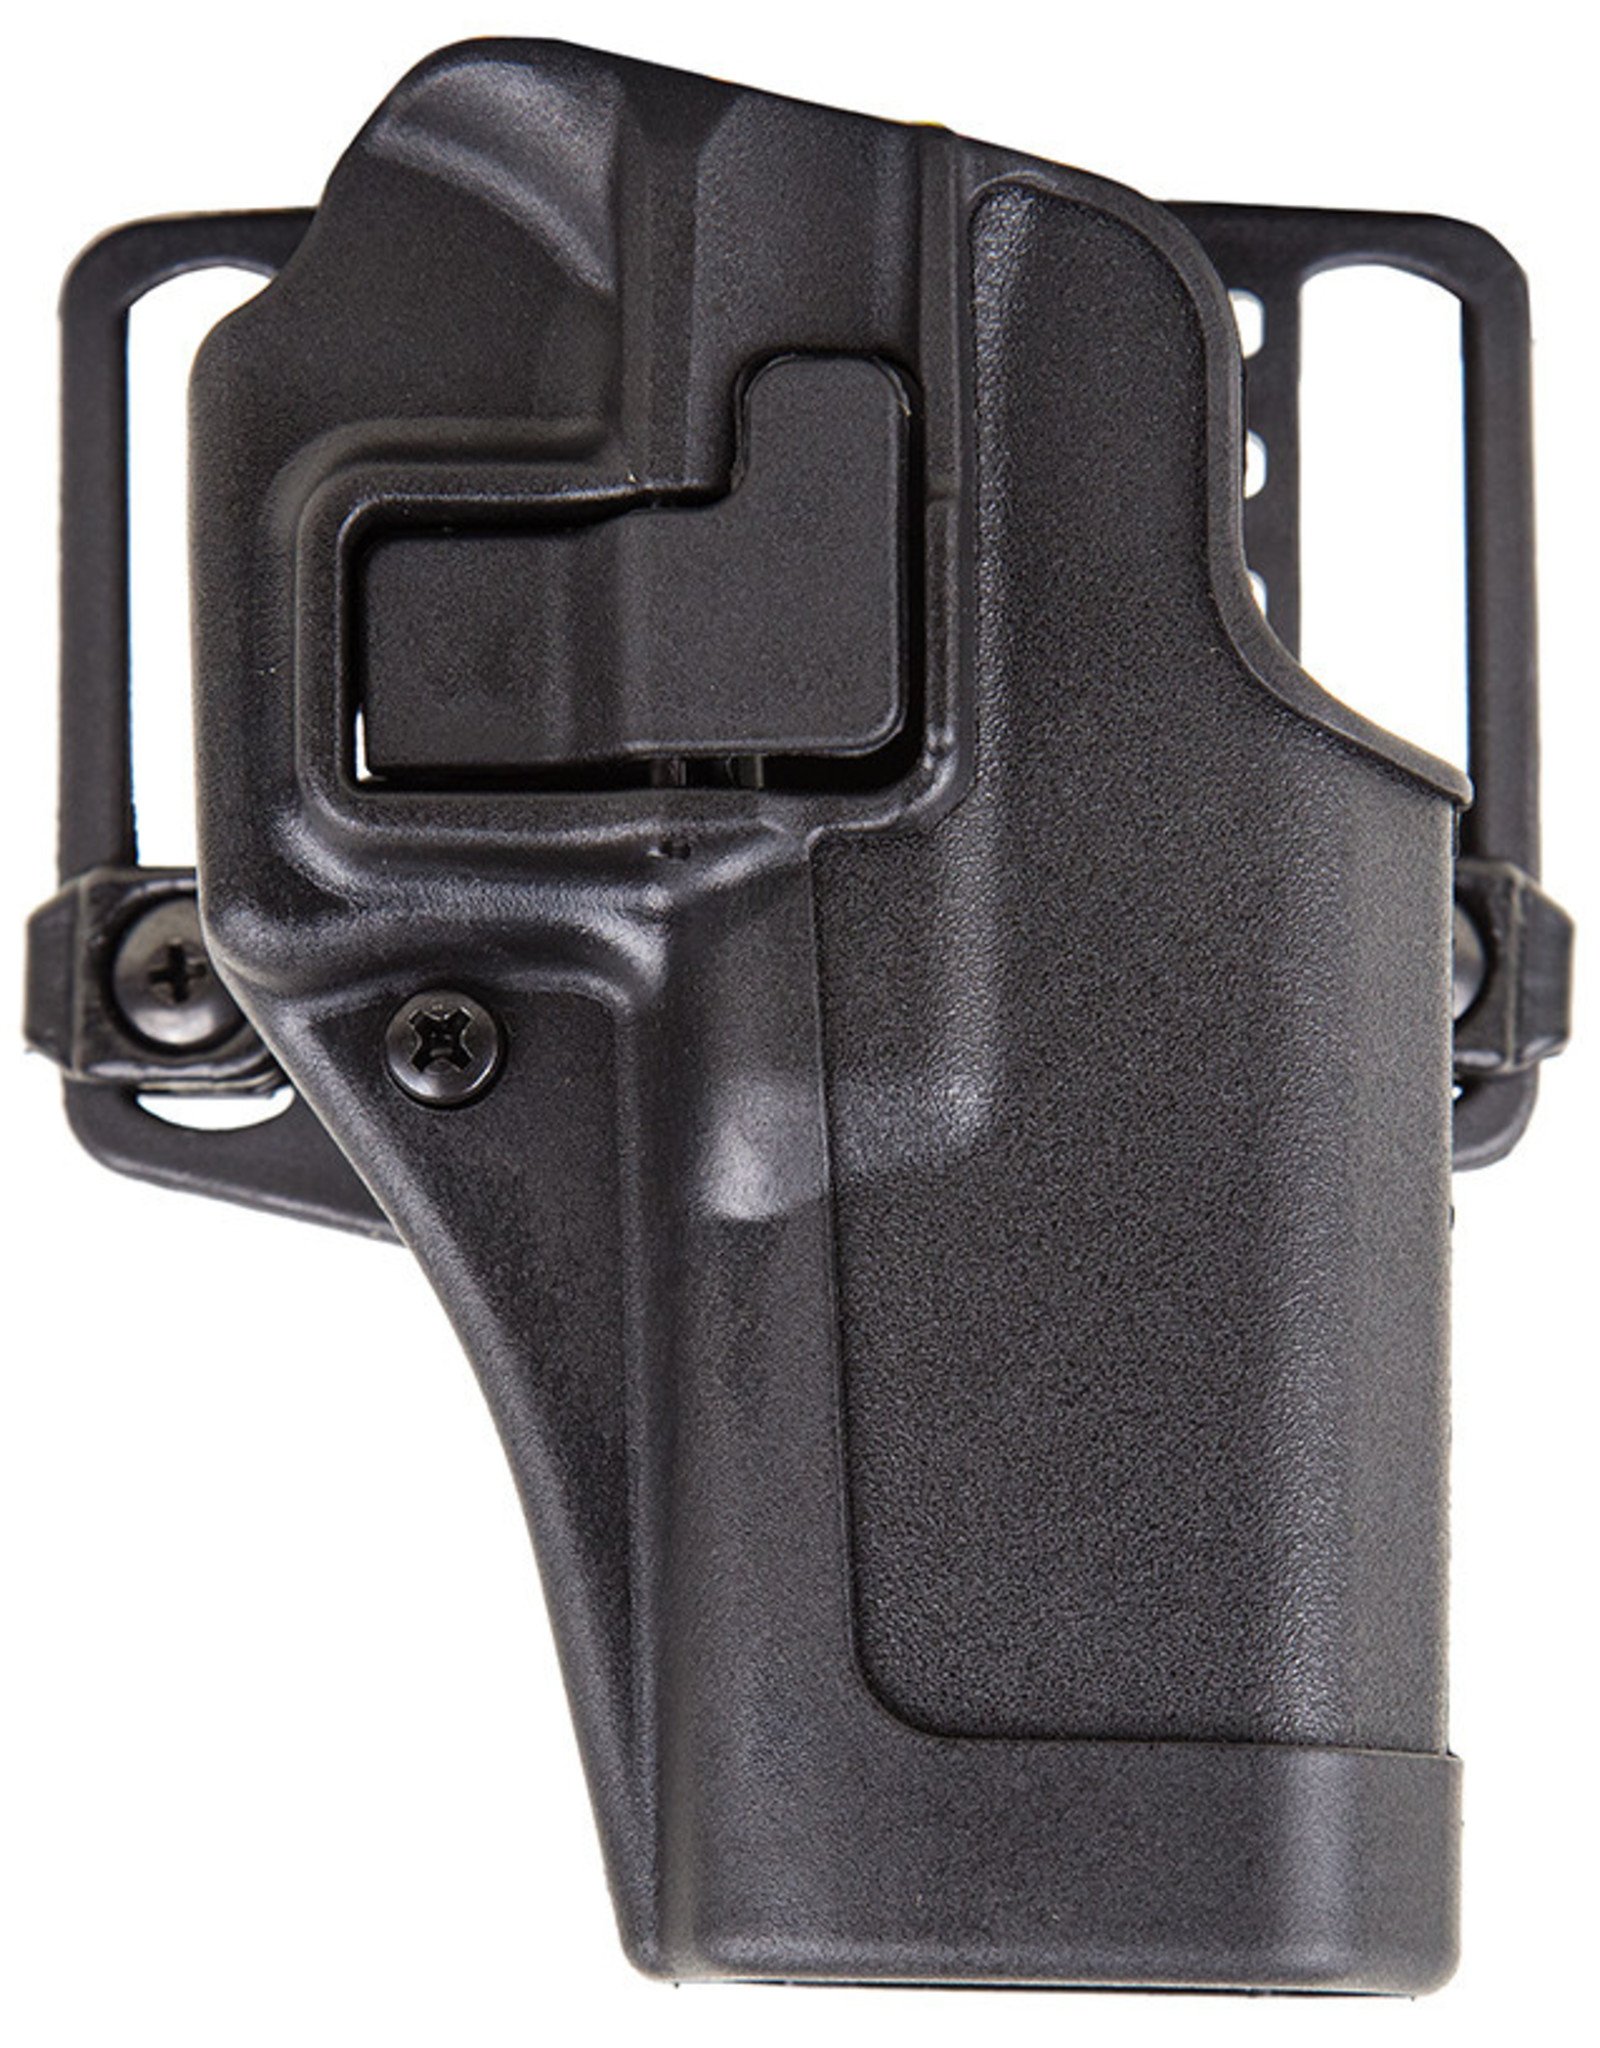 BLACK HAWK PRODUCTS Blackhawk Holster for S&W M&P Shield 9/.40 Only - RH